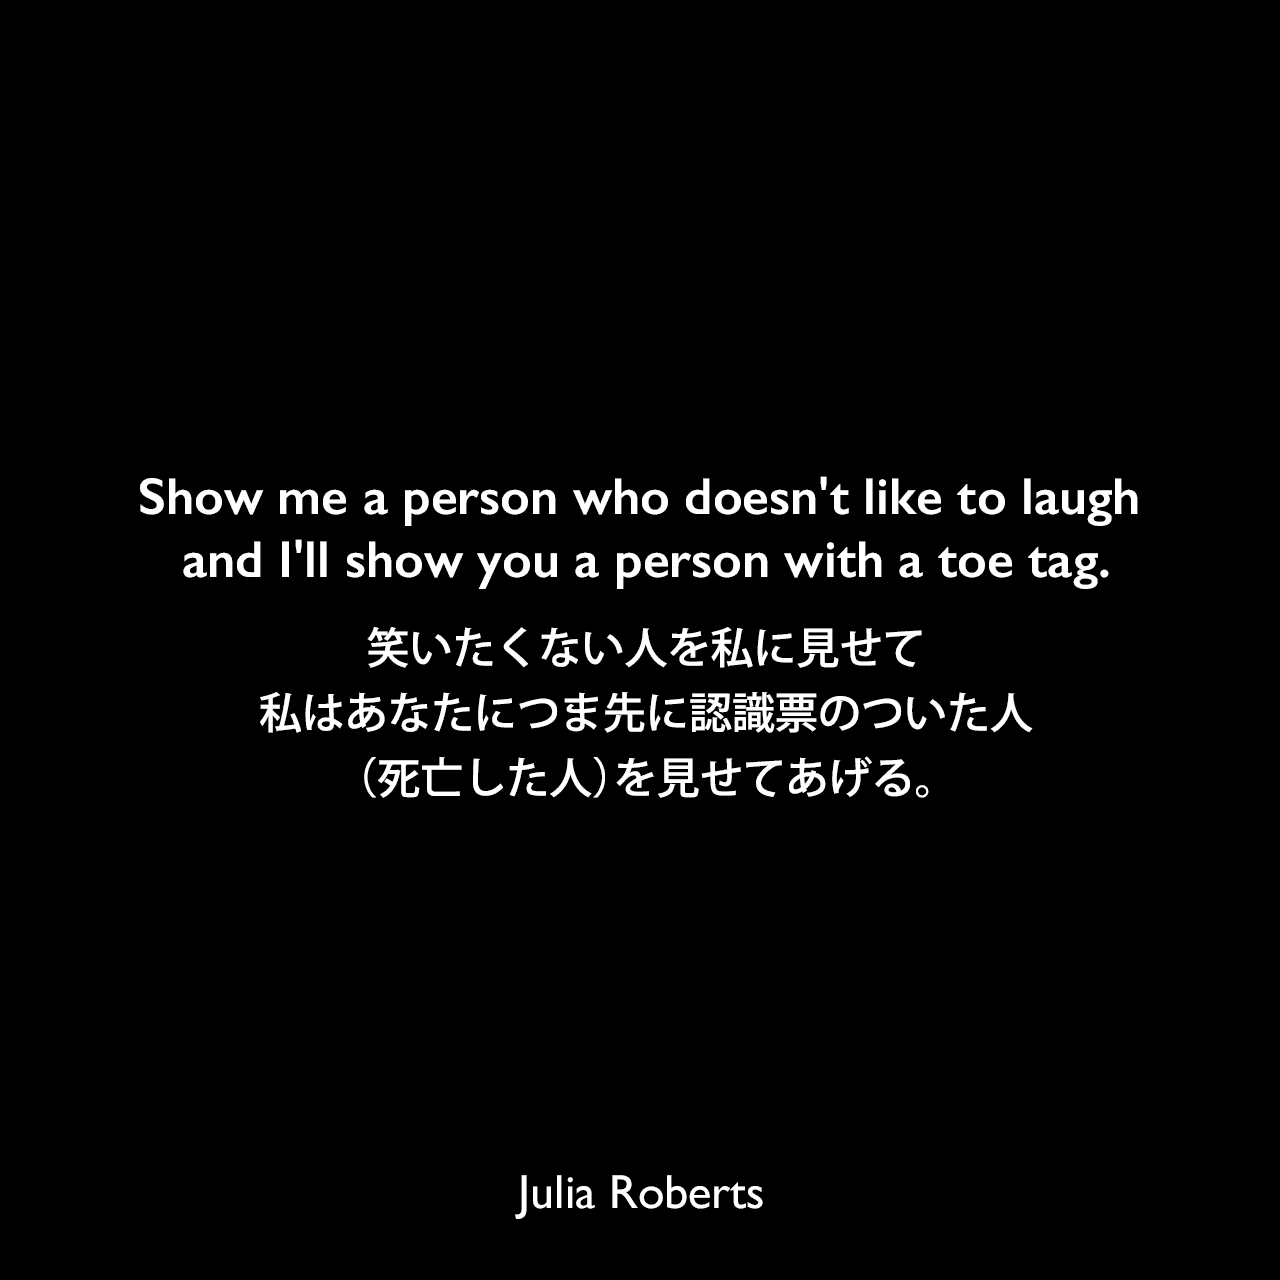 Show me a person who doesn't like to laugh and I'll show you a person with a toe tag.笑いたくない人を私に見せて、私はあなたにつま先に認識票のついた人(死亡した人)を見せてあげる。Julia Roberts